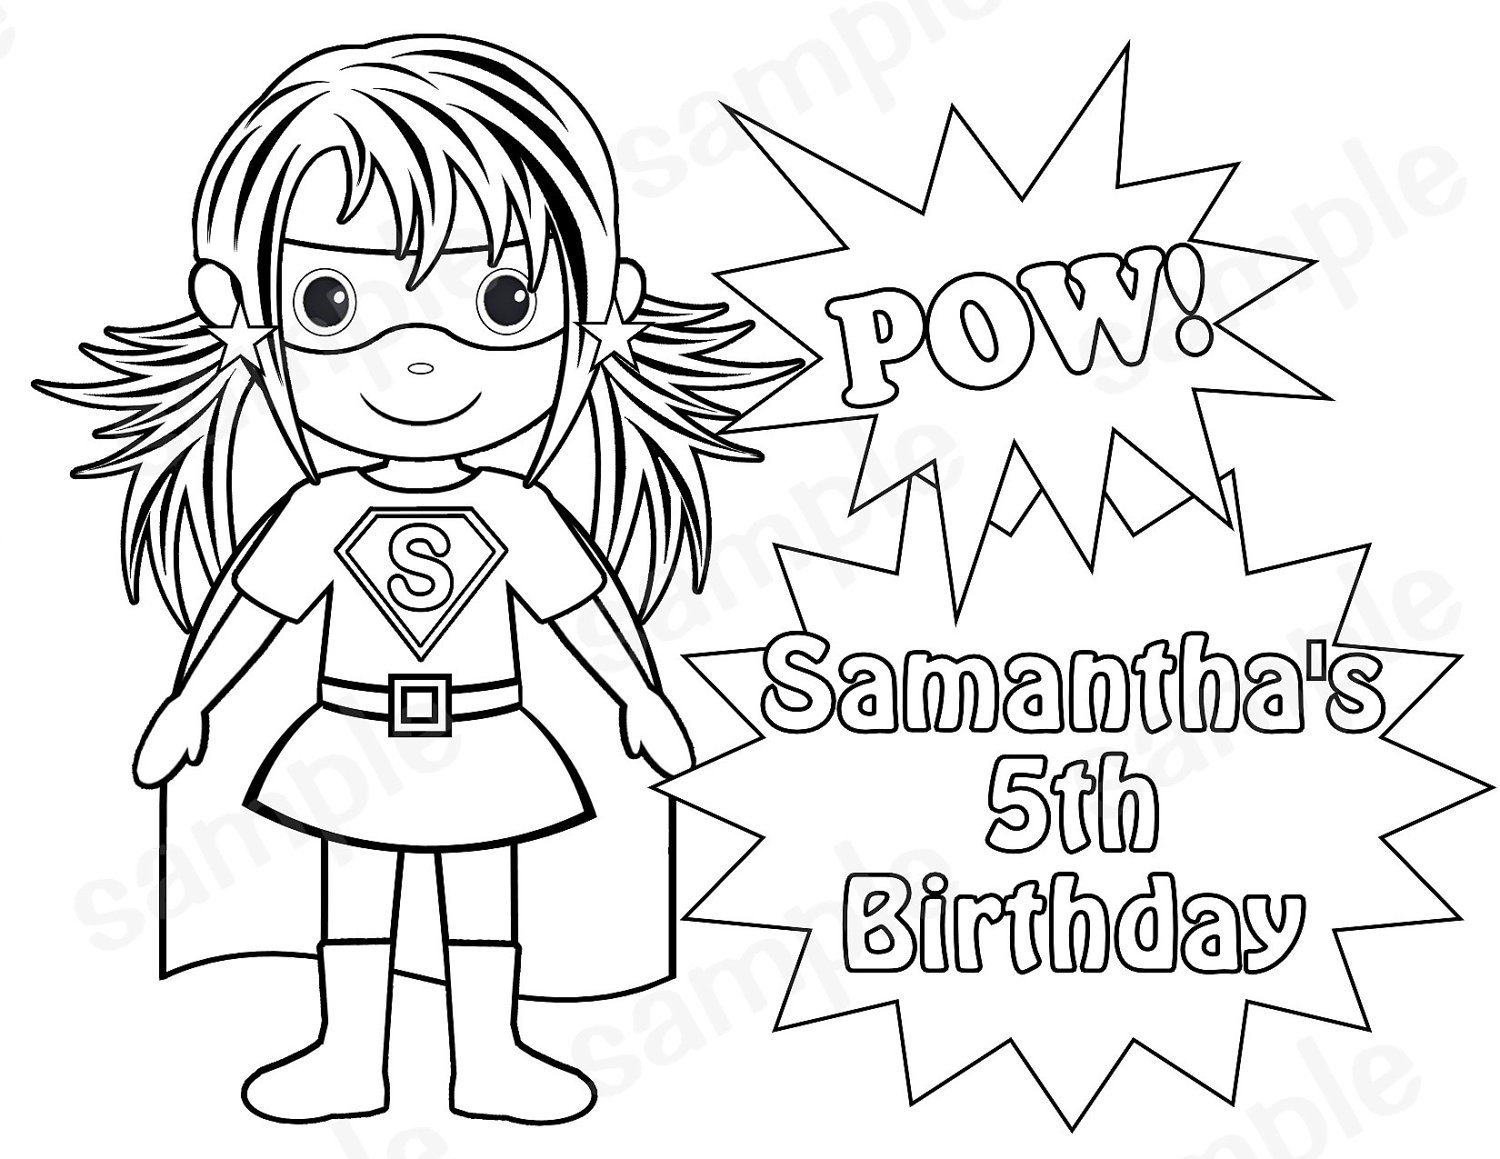 Best superhero coloring pages printable superhero for Superhero coloring pages printable